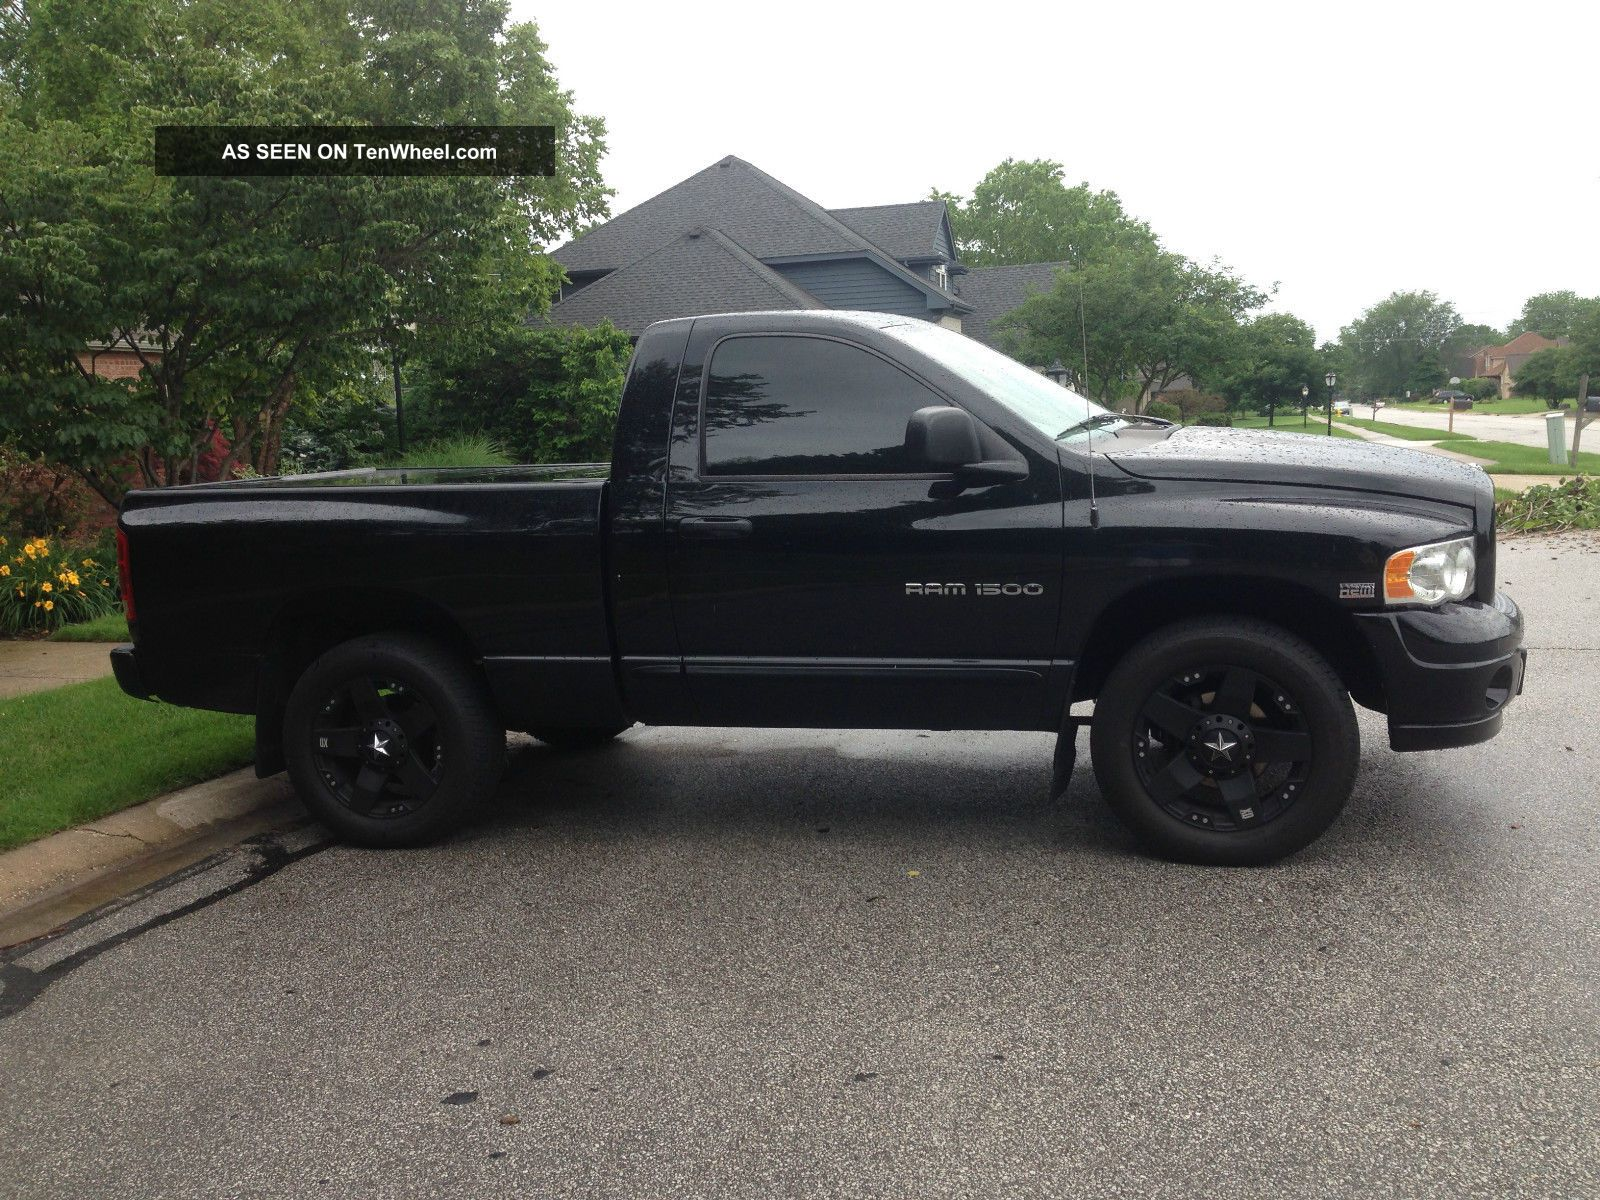 2005 dodge ram 1500 laramie hemi 5 7l 4x4 pickup truck. Black Bedroom Furniture Sets. Home Design Ideas